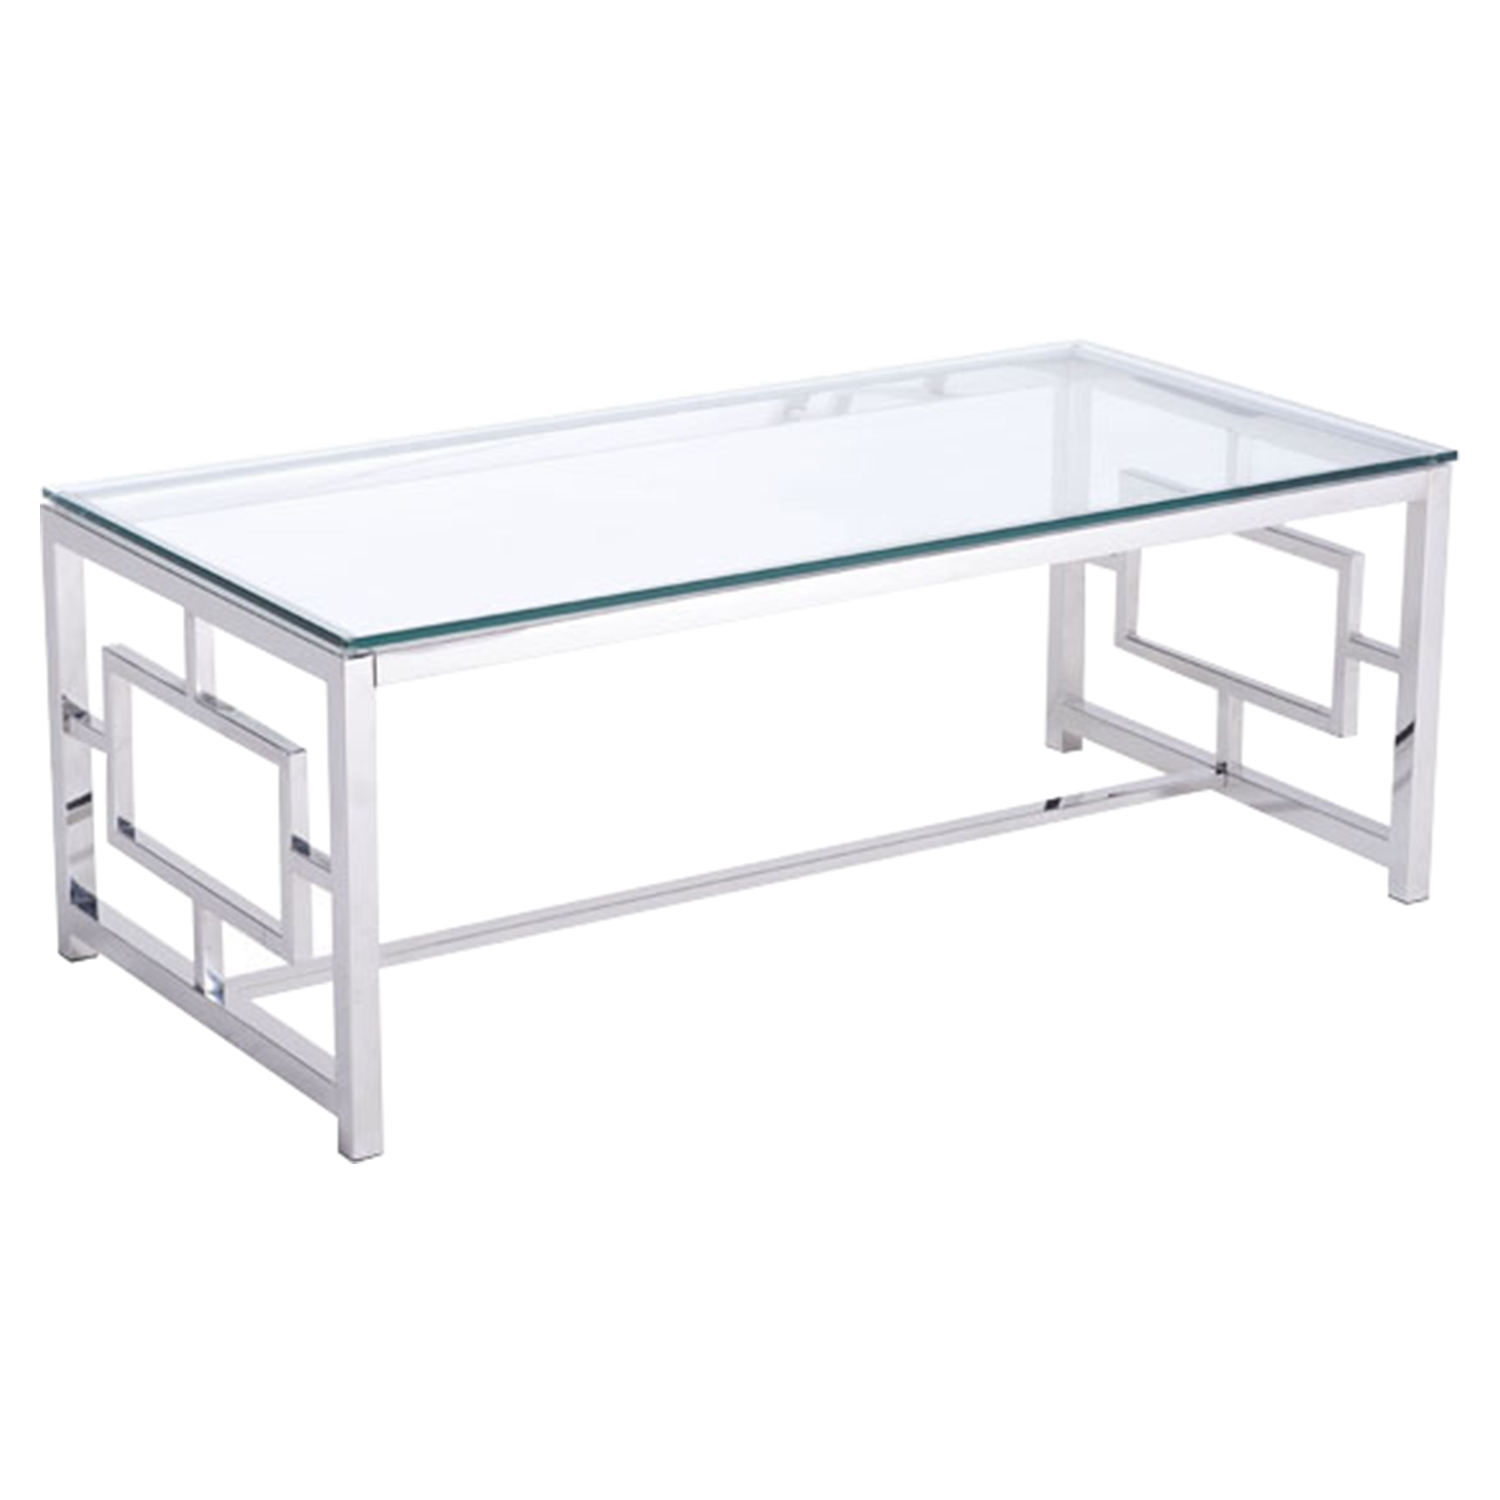 Geranium Coffee Table - Glass Top, Stainless Steel - ZM-100183